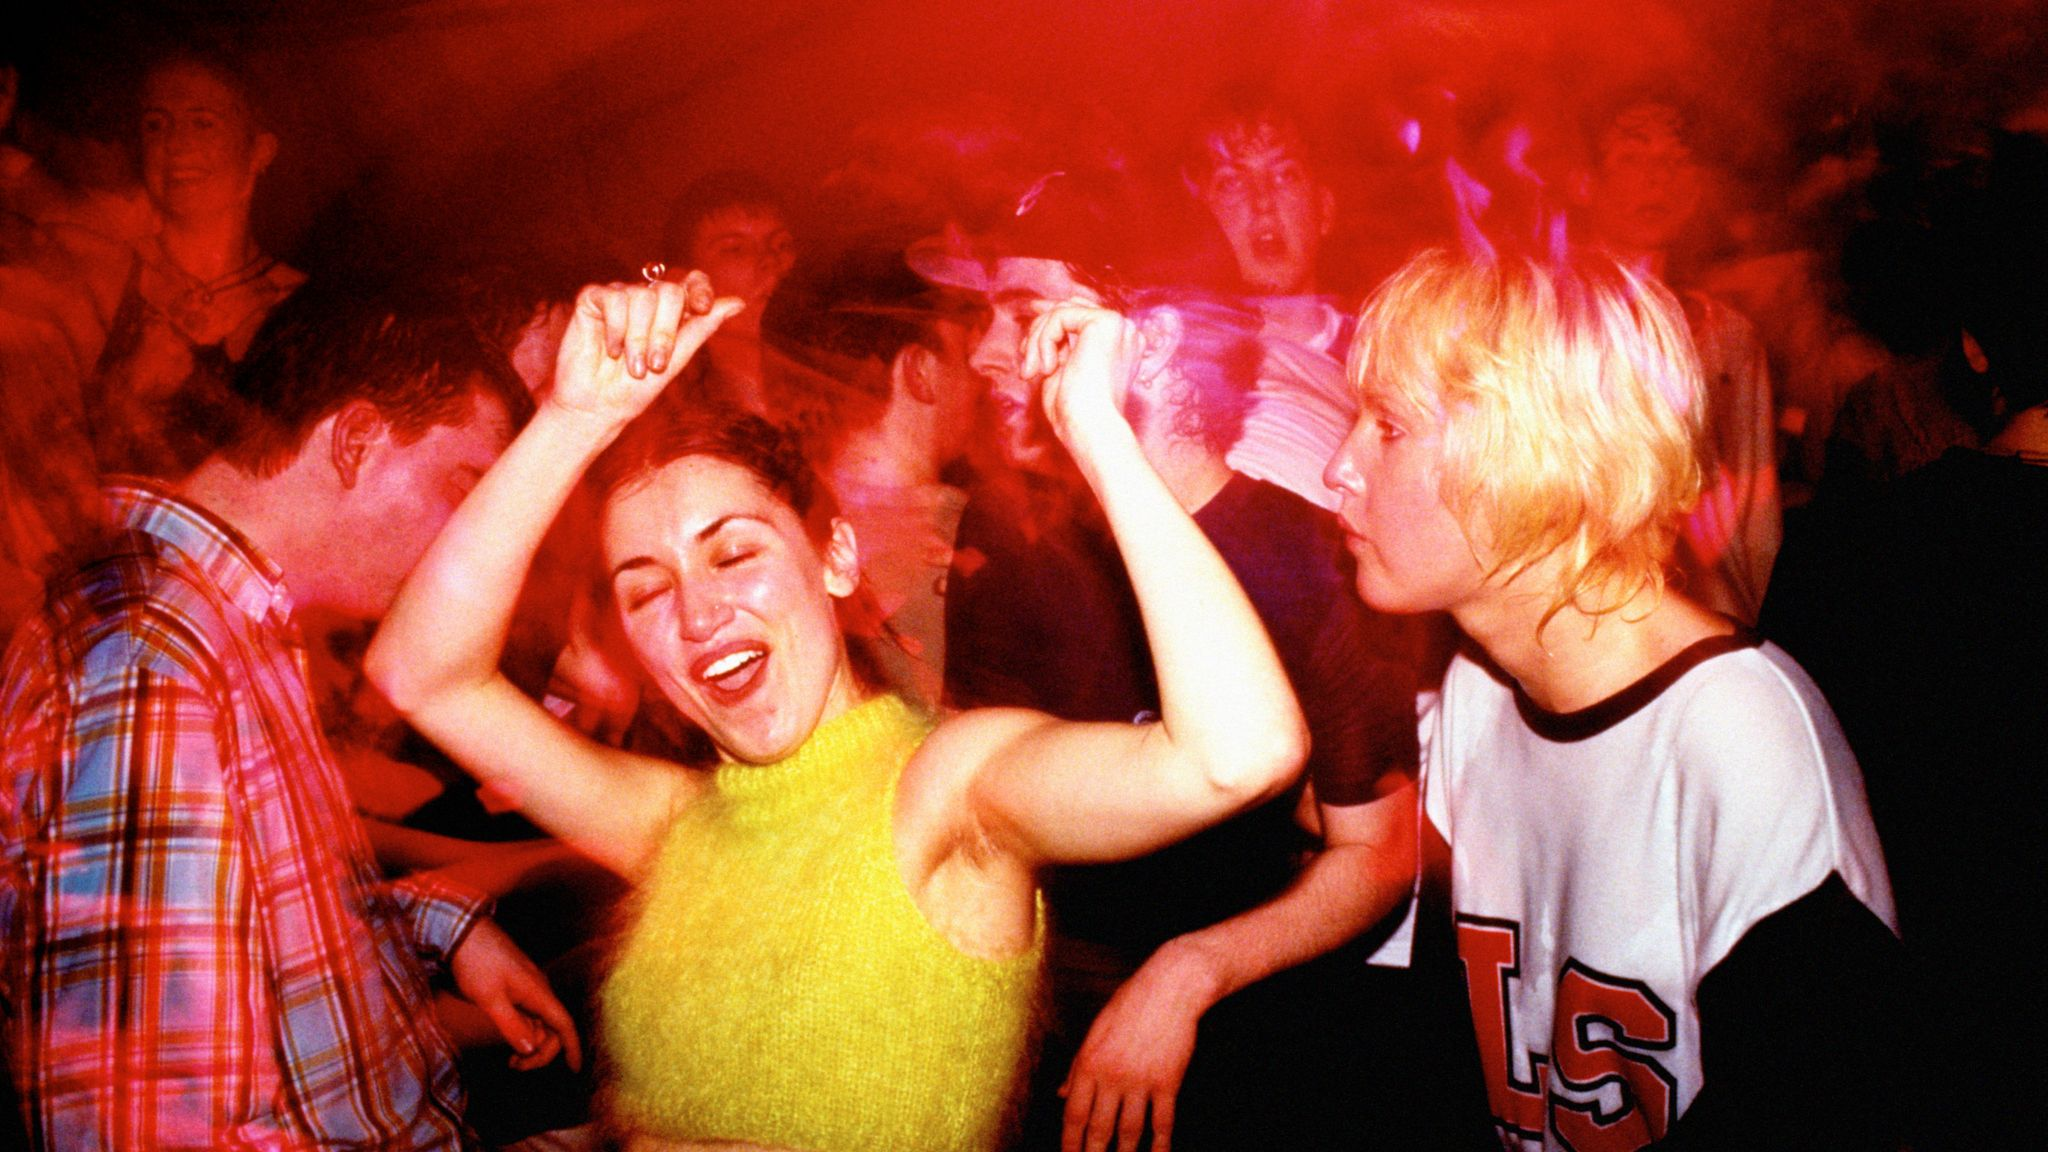 Ravers dancing in the mid 1990s